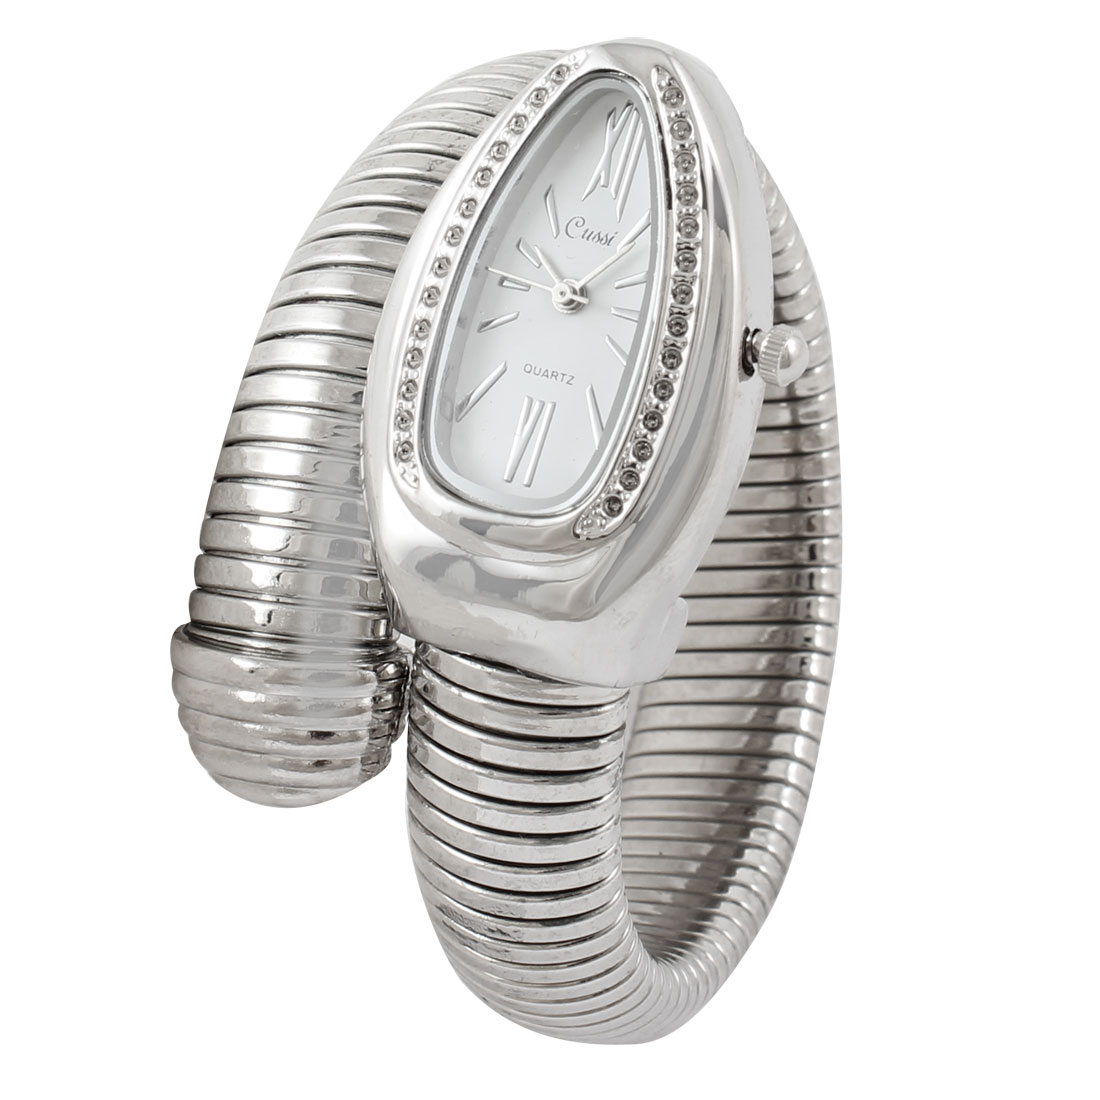 Silver Tone Stainless Steel Snake Shaped Quartz Wrist Bracelet Watch for Ladies